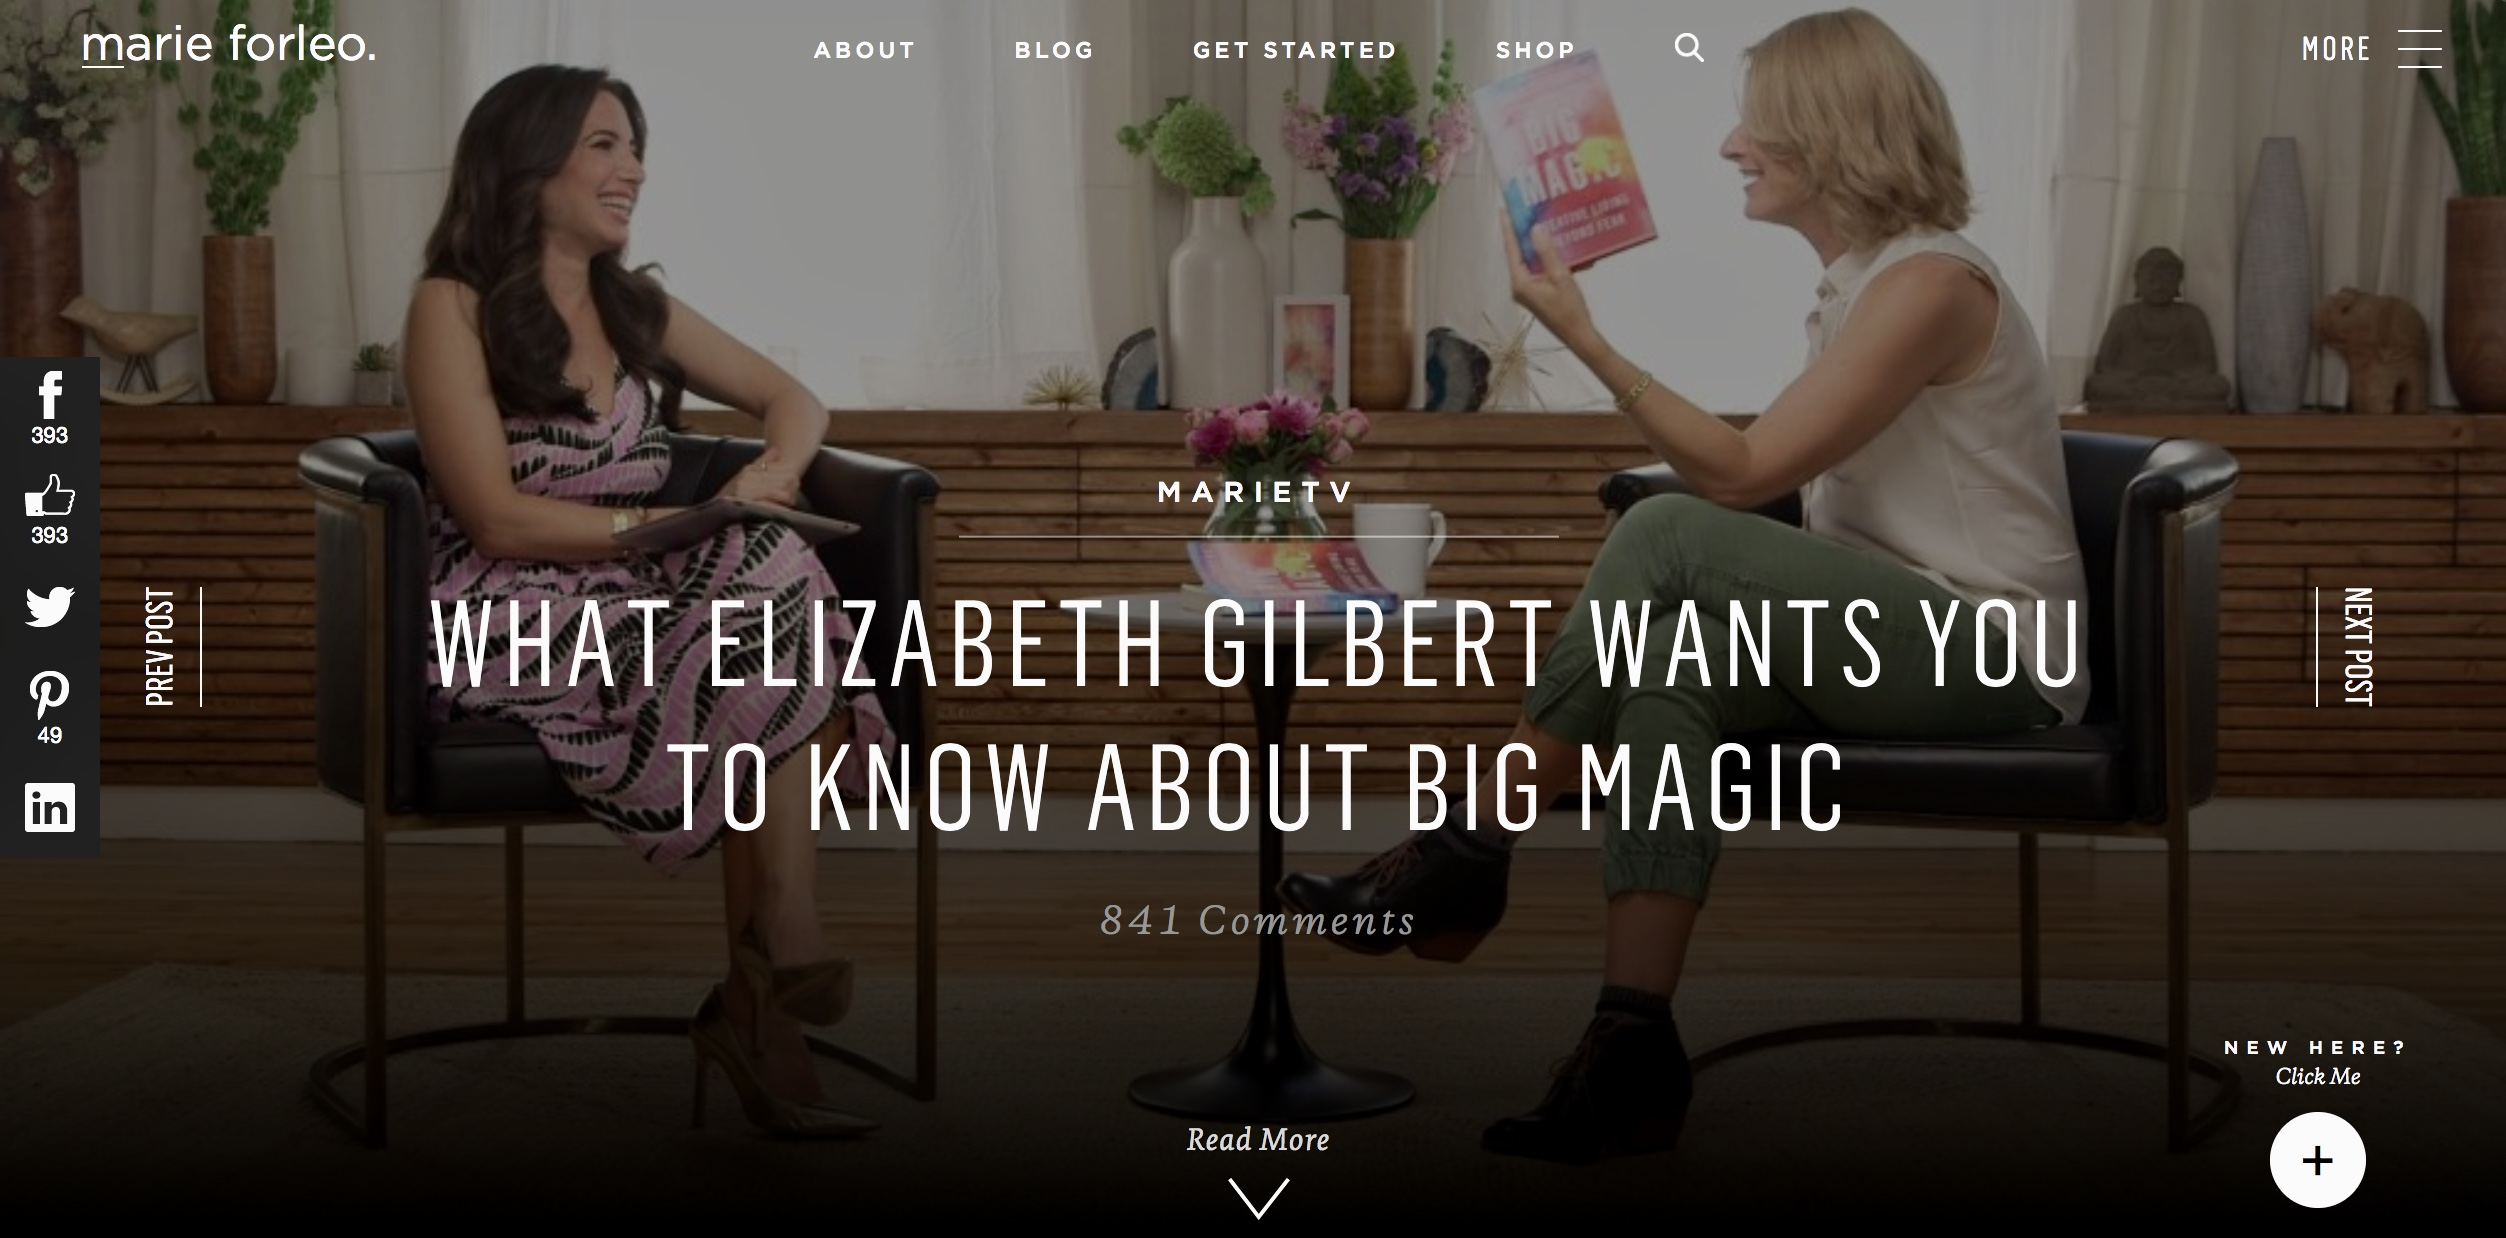 Marie Forleo TV: WHAT ELIZABETH GILBERT WANTS YOU TO KNOW ABOUT BIG MAGIC